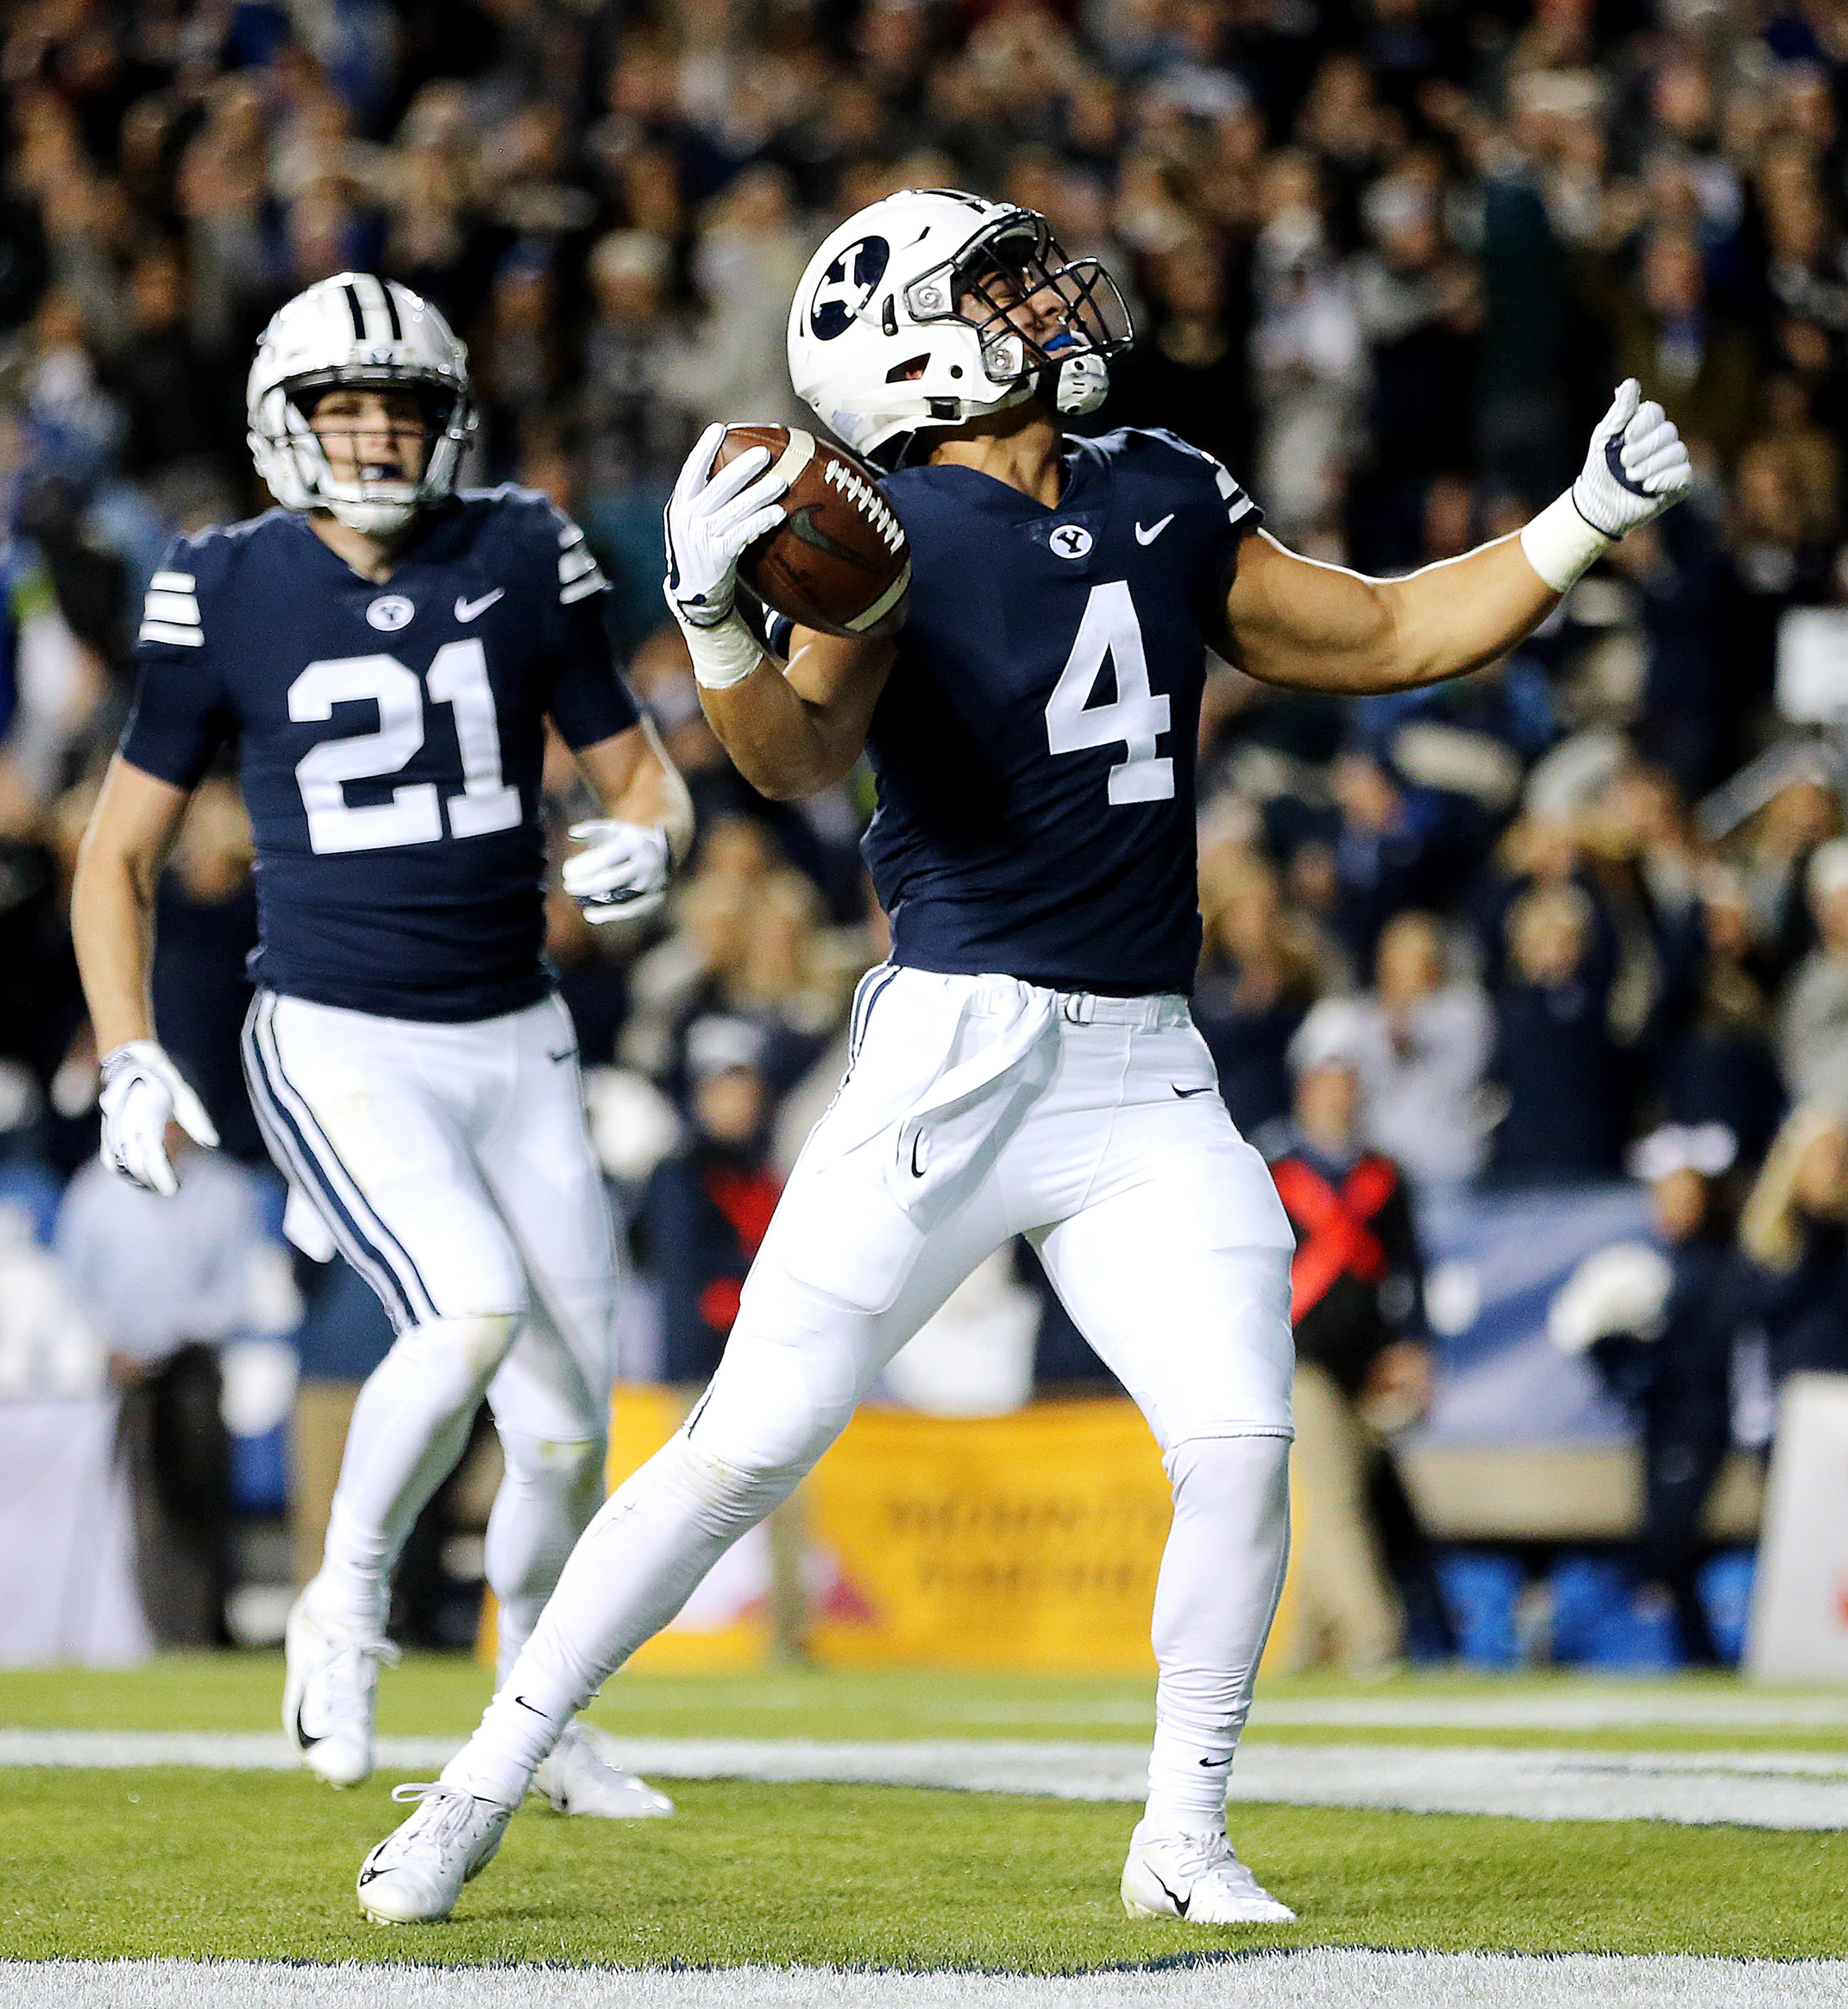 BYU Cougars running back Lopini Katoa (4) celebrates a touchdown as BYU and Hawaii play at LaVell Edwards Stadium in Provo on Saturday, Oct. 13, 2018. Katoa was BYU's second-leading rusher in 2019, and will be counted on in 2020 to lead an inexperienced running backs group.